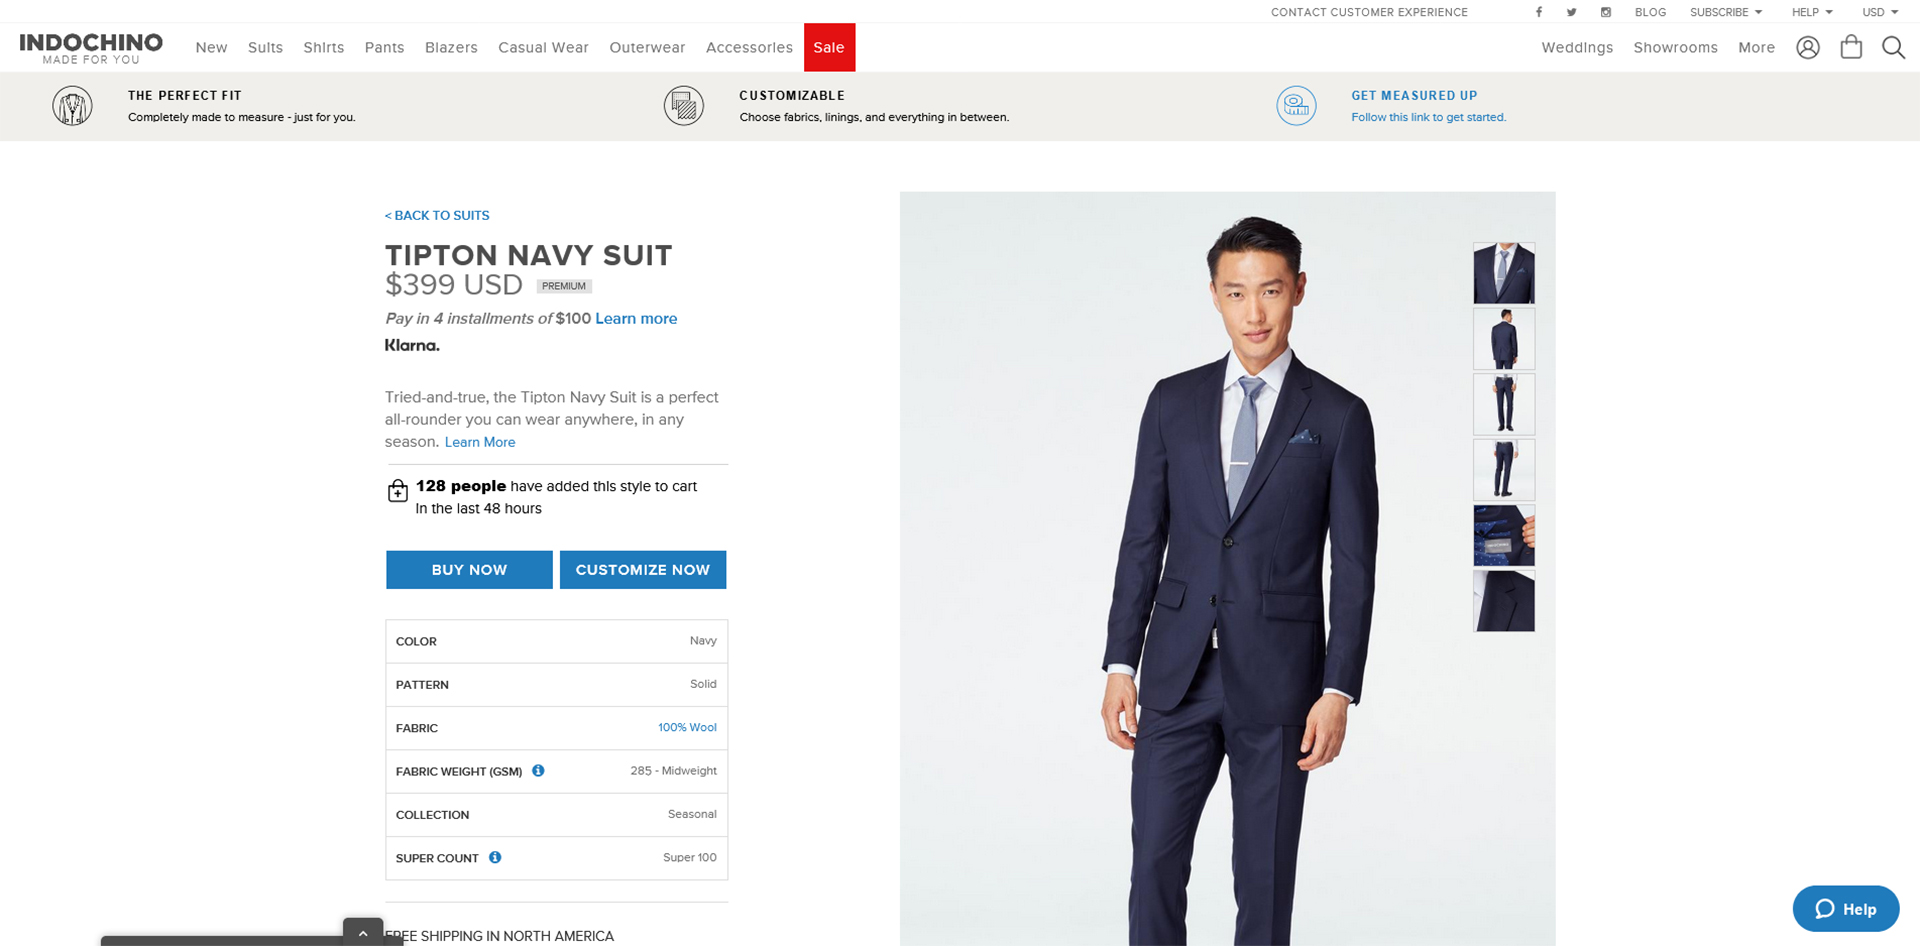 Indochino made-to-measure suit online customization